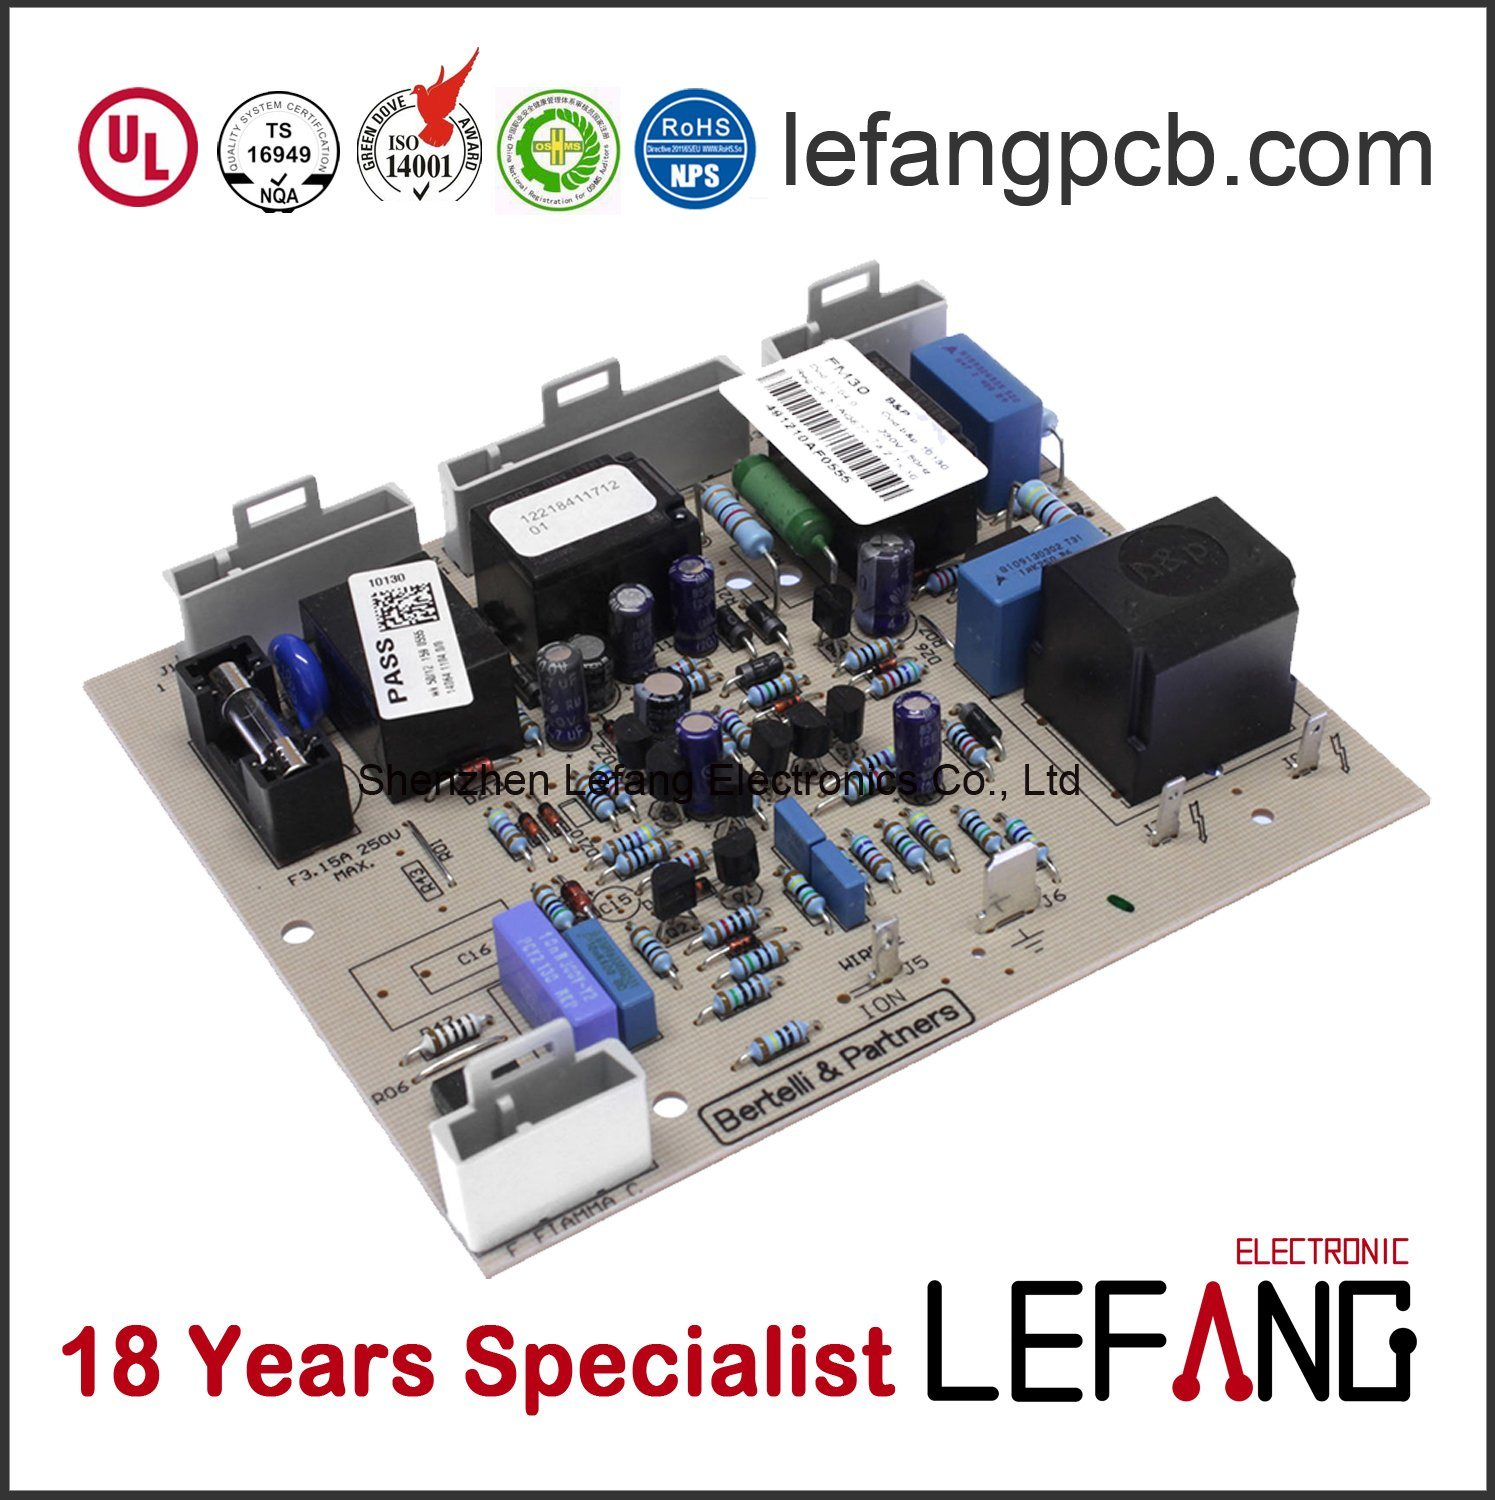 China Prototype Pcb Board Assembly With Full Turnkey Pcba Service Circuit Low Cost Fabrication